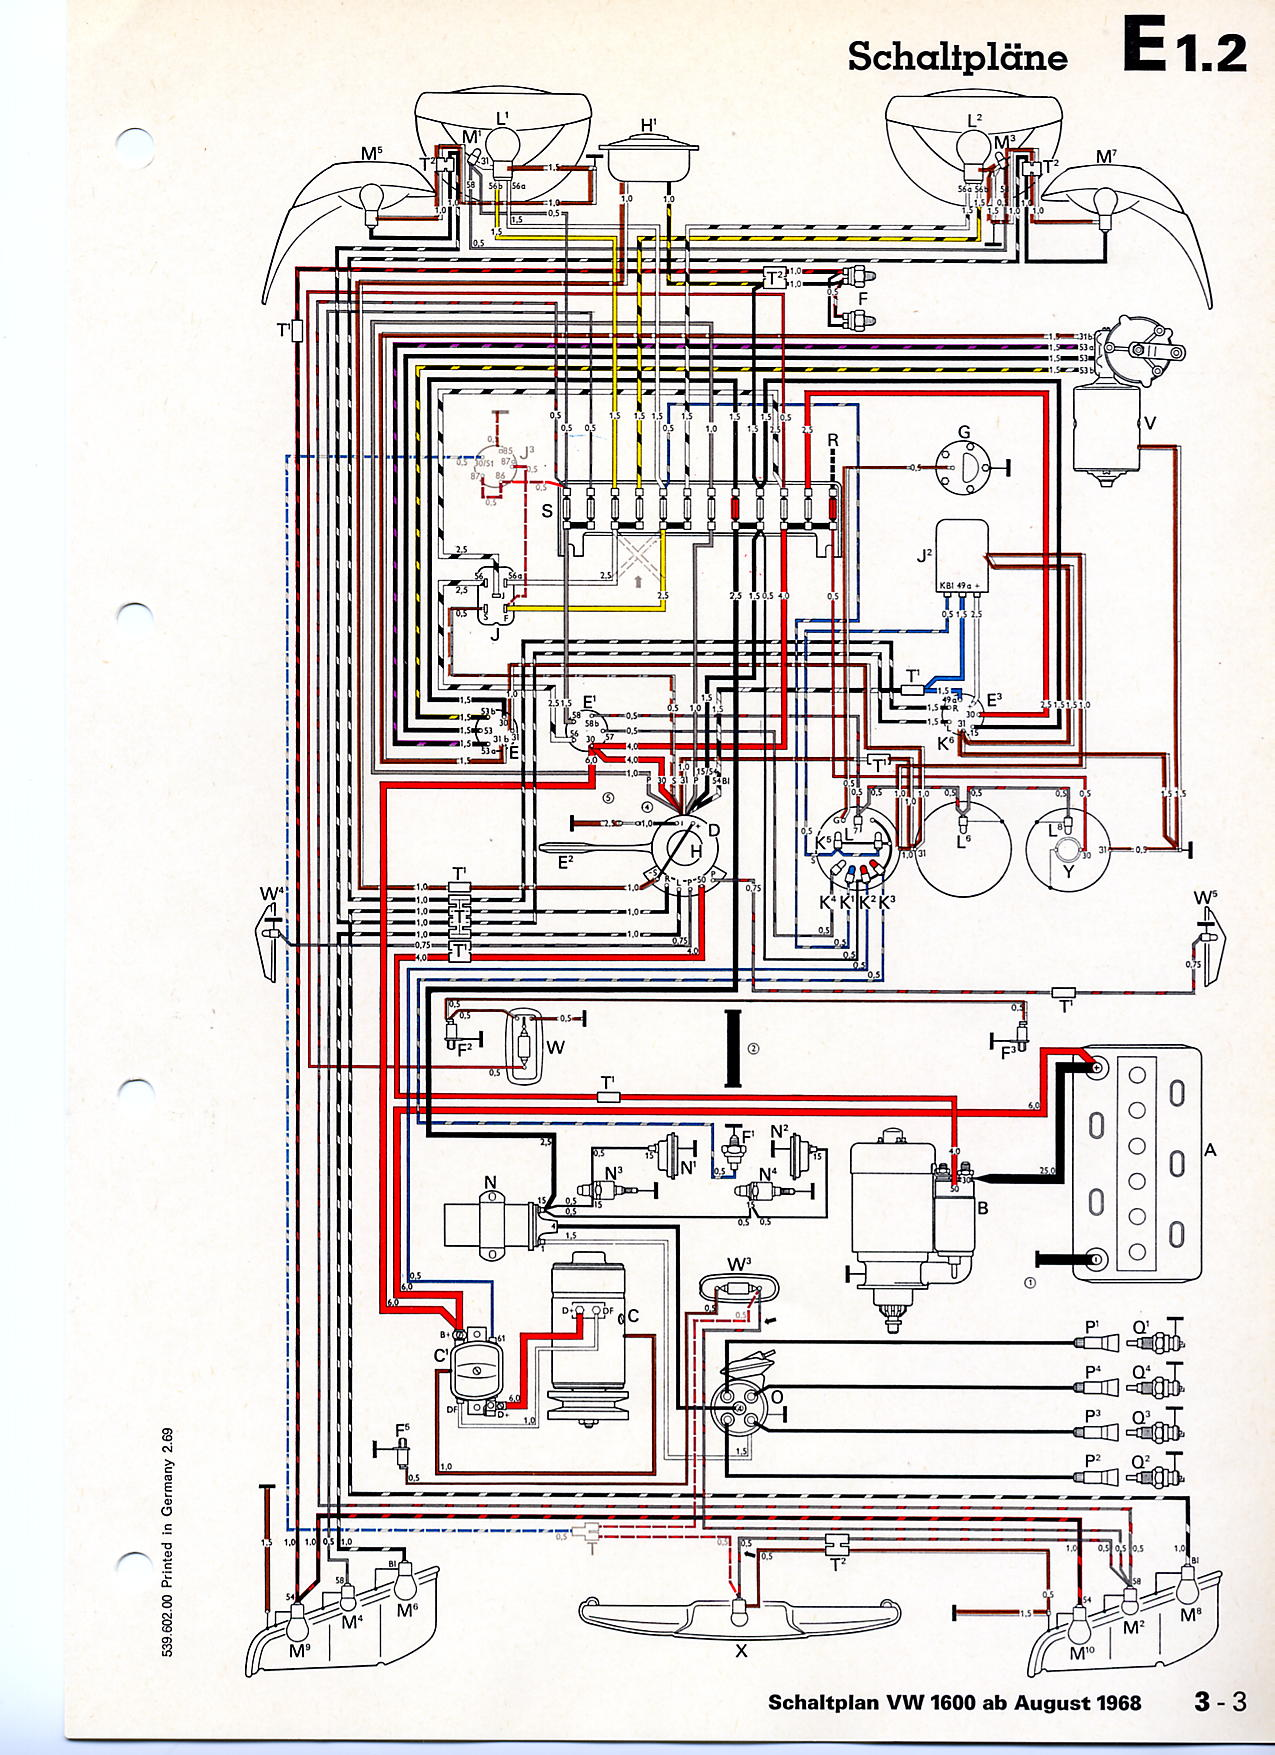 1600_from_august_1968 vwvortex com 70 type 3 wiring harness & 70 ghia harness the same??? 1968 vw type 3 wiring diagram at gsmx.co